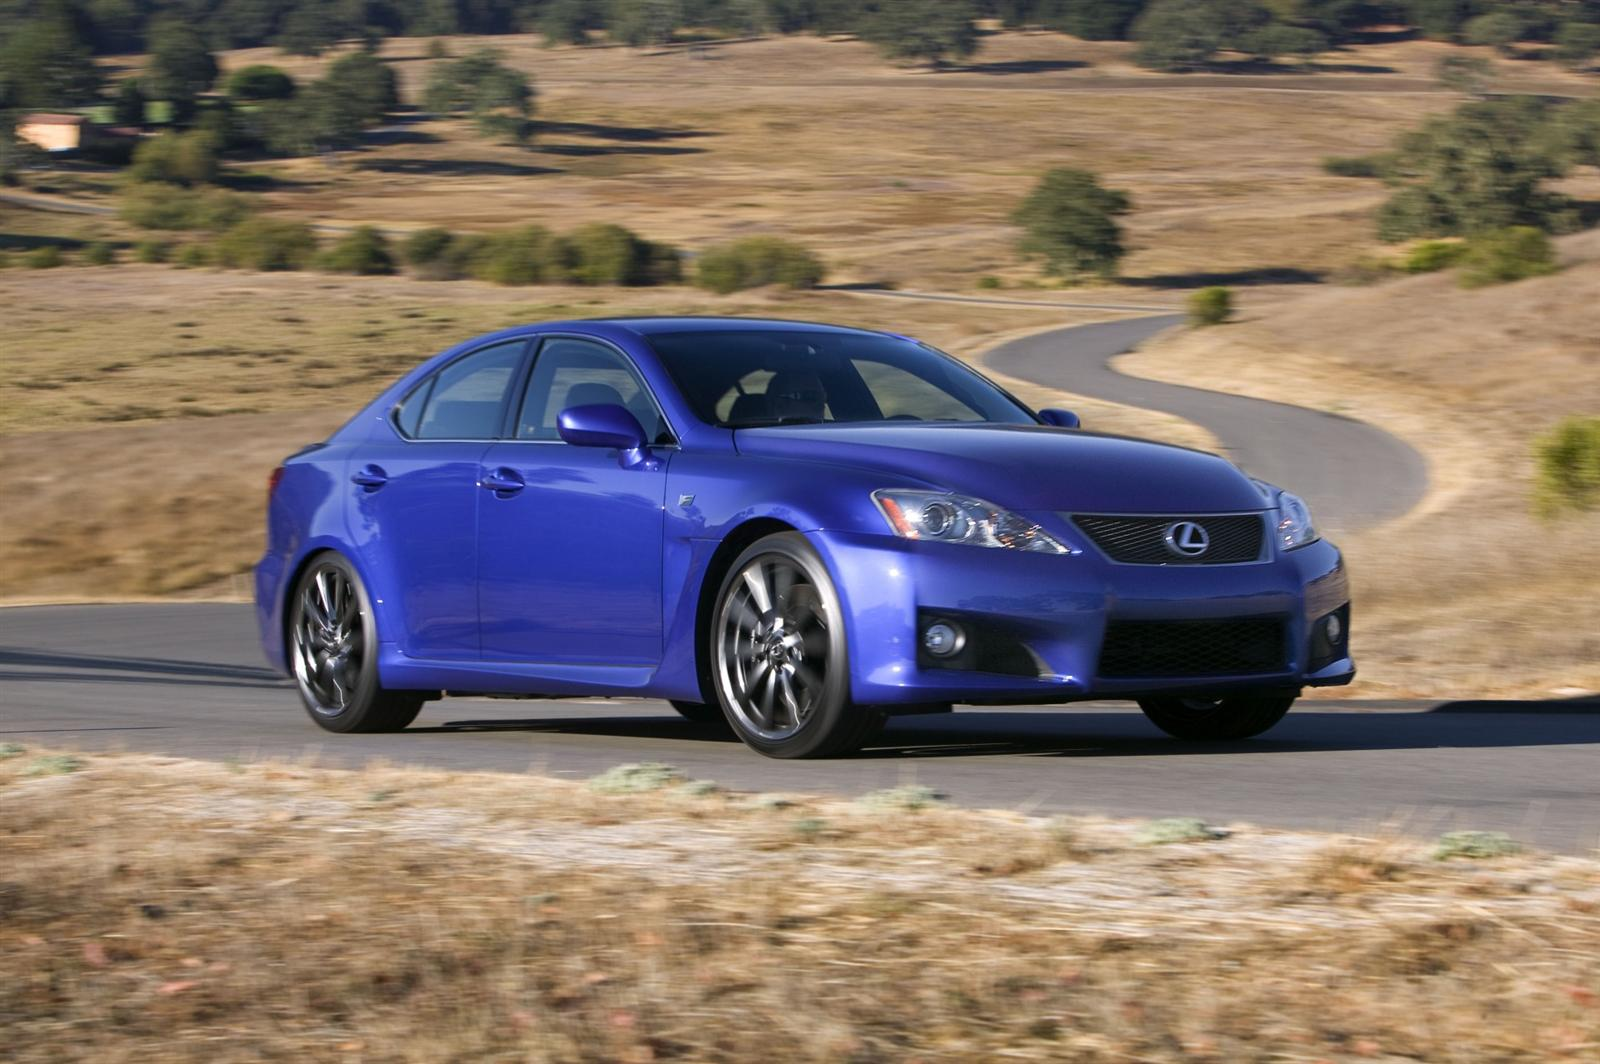 2010 lexus is f information and photos momentcar. Black Bedroom Furniture Sets. Home Design Ideas